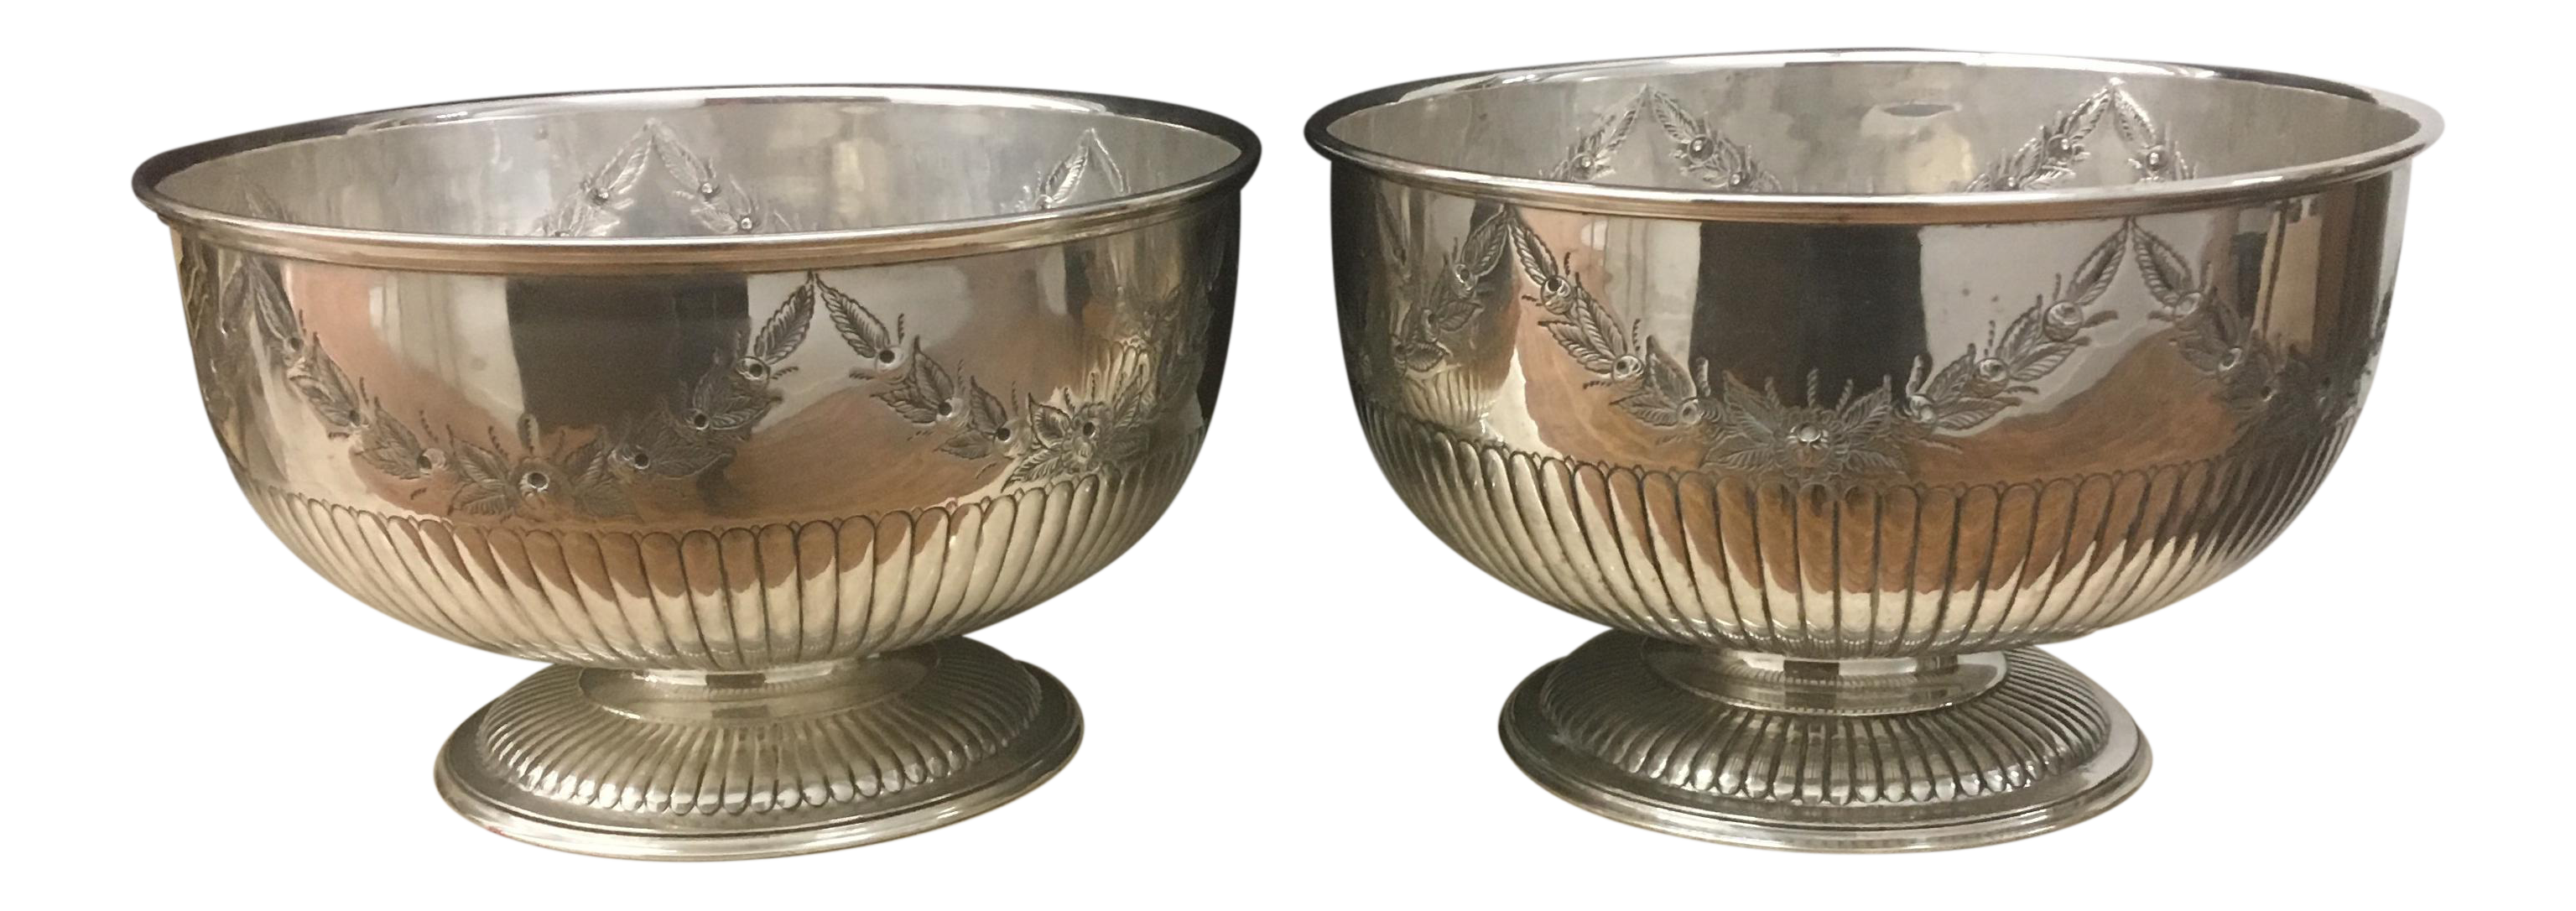 Bowls - Silver Plate English Punch Bowls - Set of 2  sc 1 st  Chairish & Bowls - Silver Plate English Punch Bowls - Set of 2 | Chairish